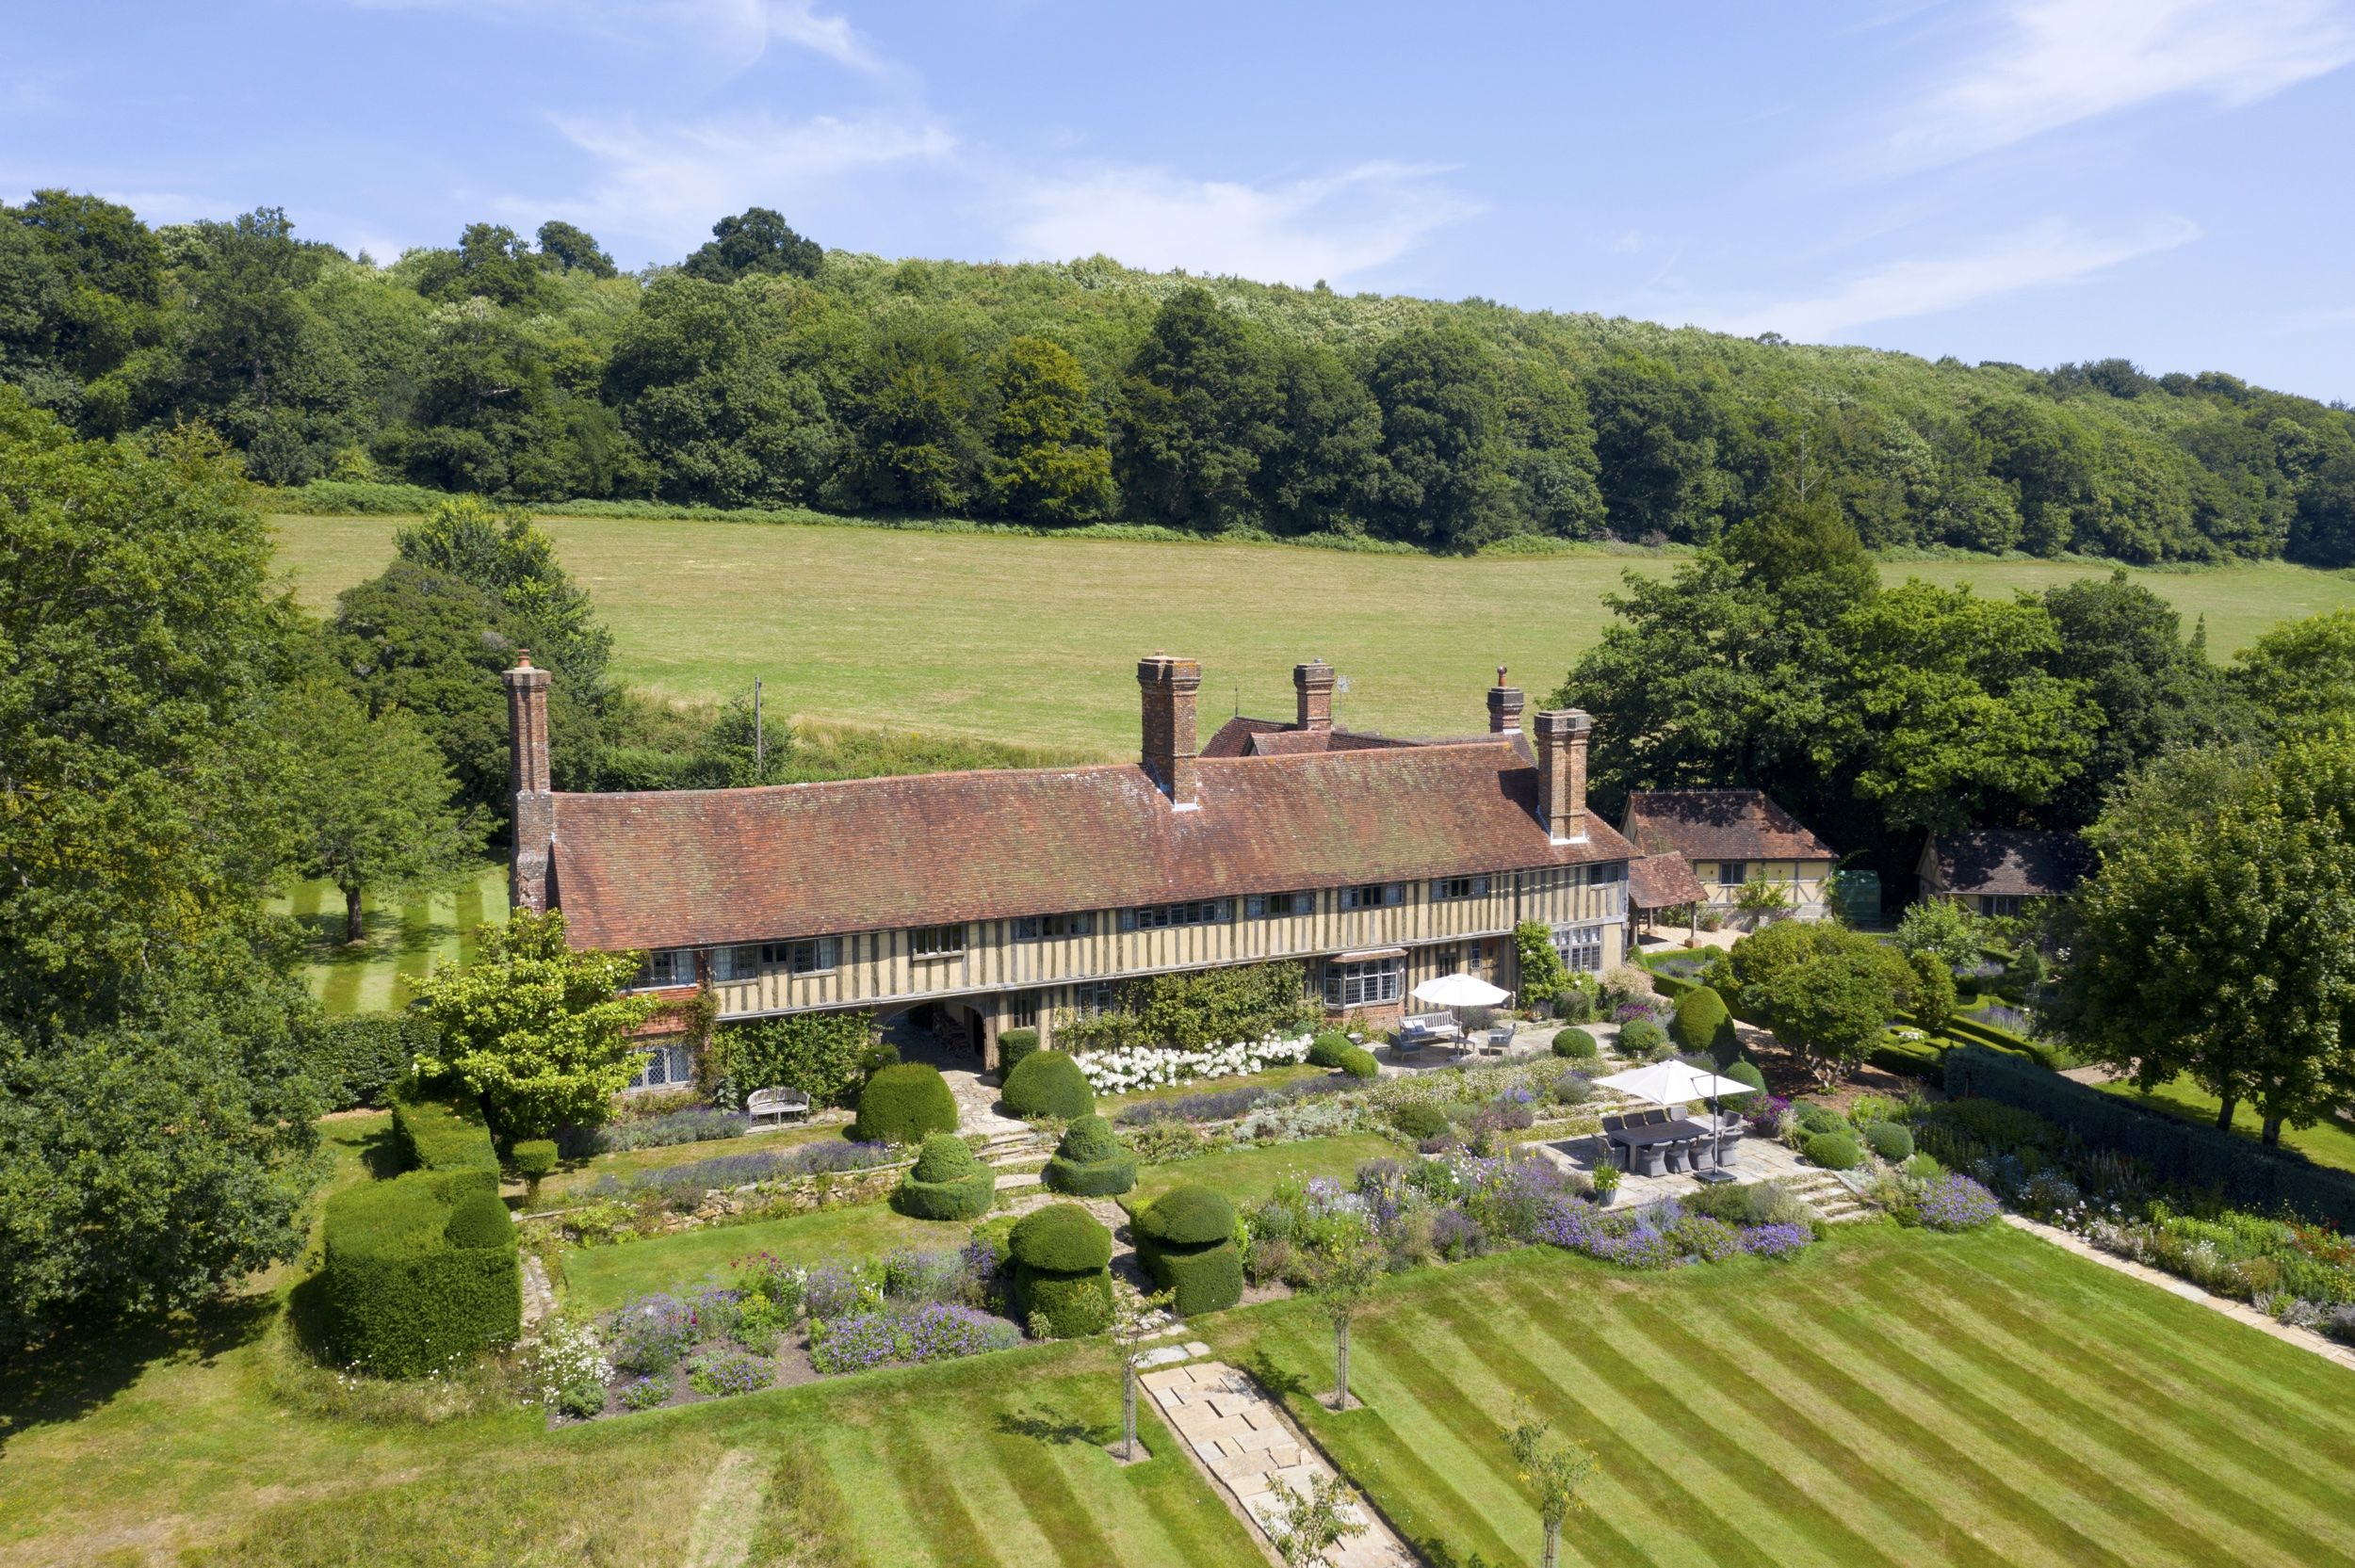 See inside this magnificent medieval home with Arts and Crafts garden